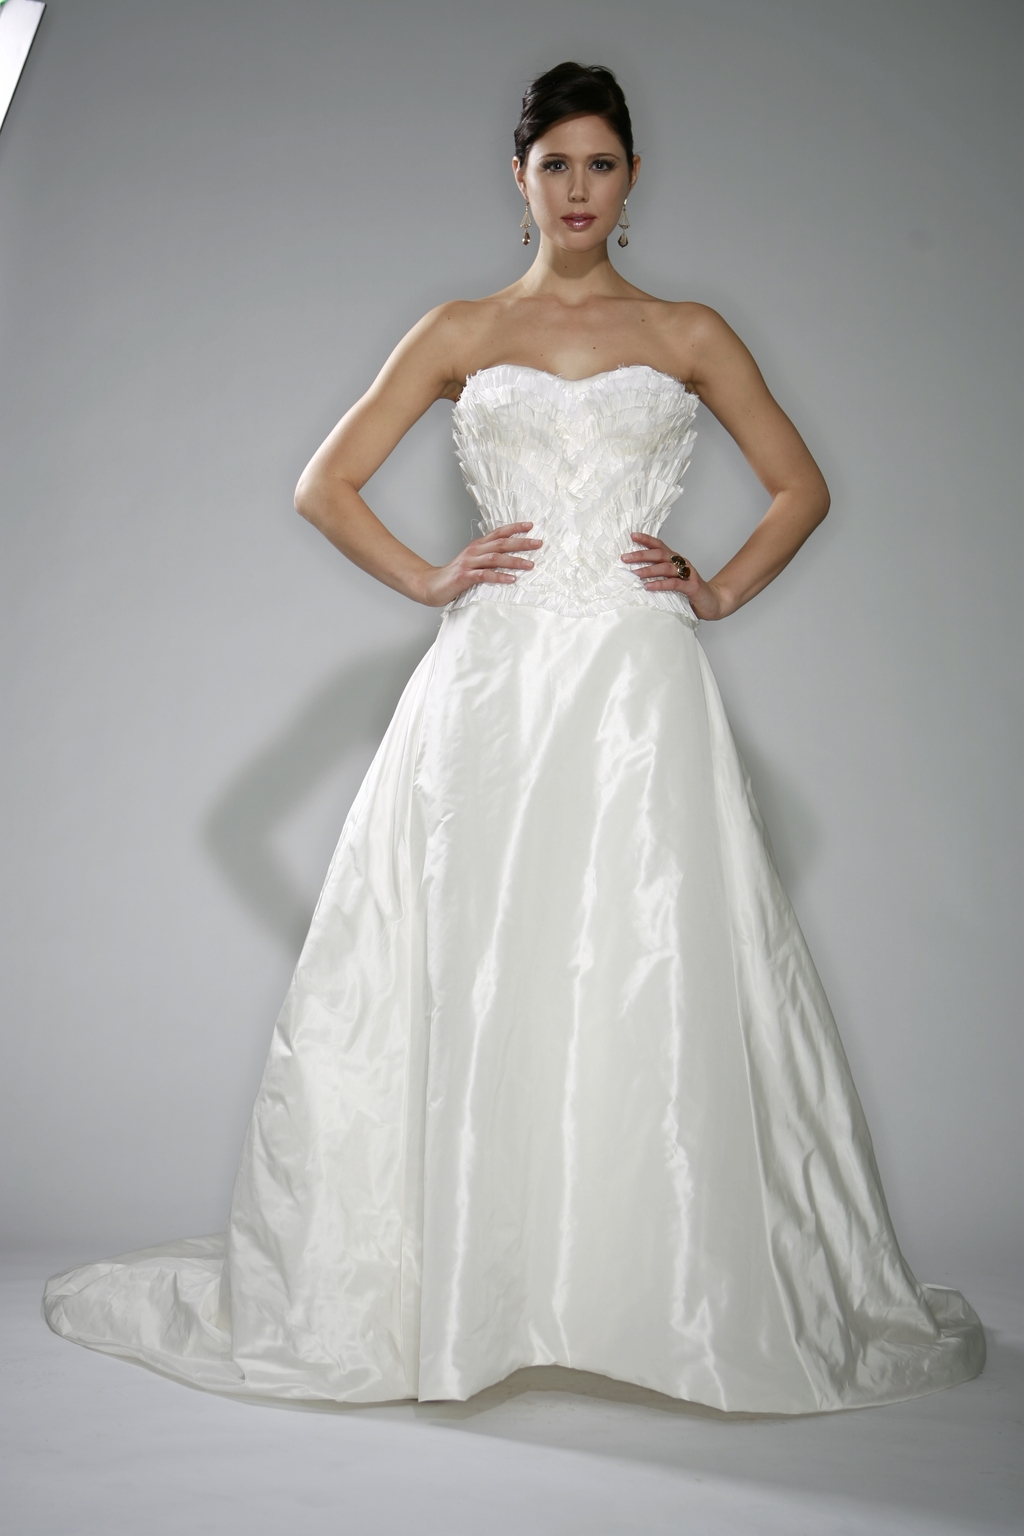 Tosca_spring_2010_white-strapless-wedding-dress-structured-strapless-bodice.full